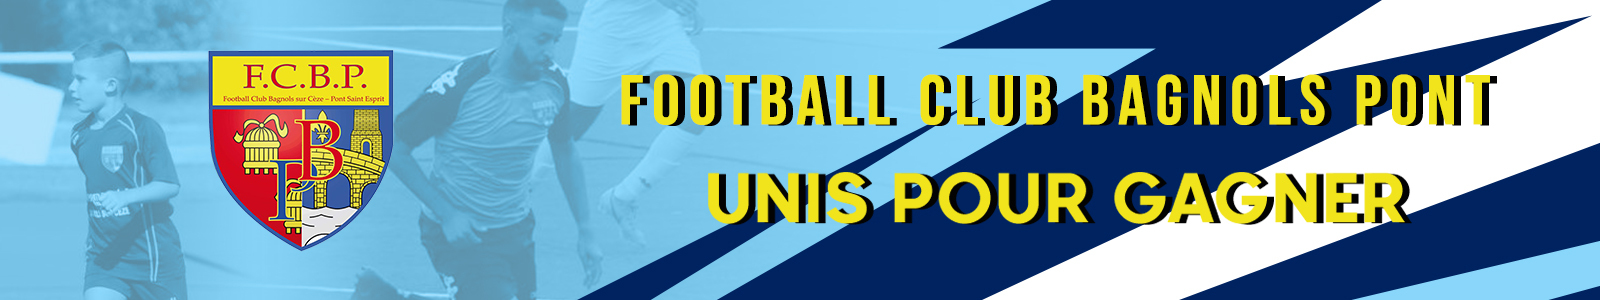 FC BAGNOLS PONT : site officiel du club de foot de Pont-Saint-Esprit - footeo